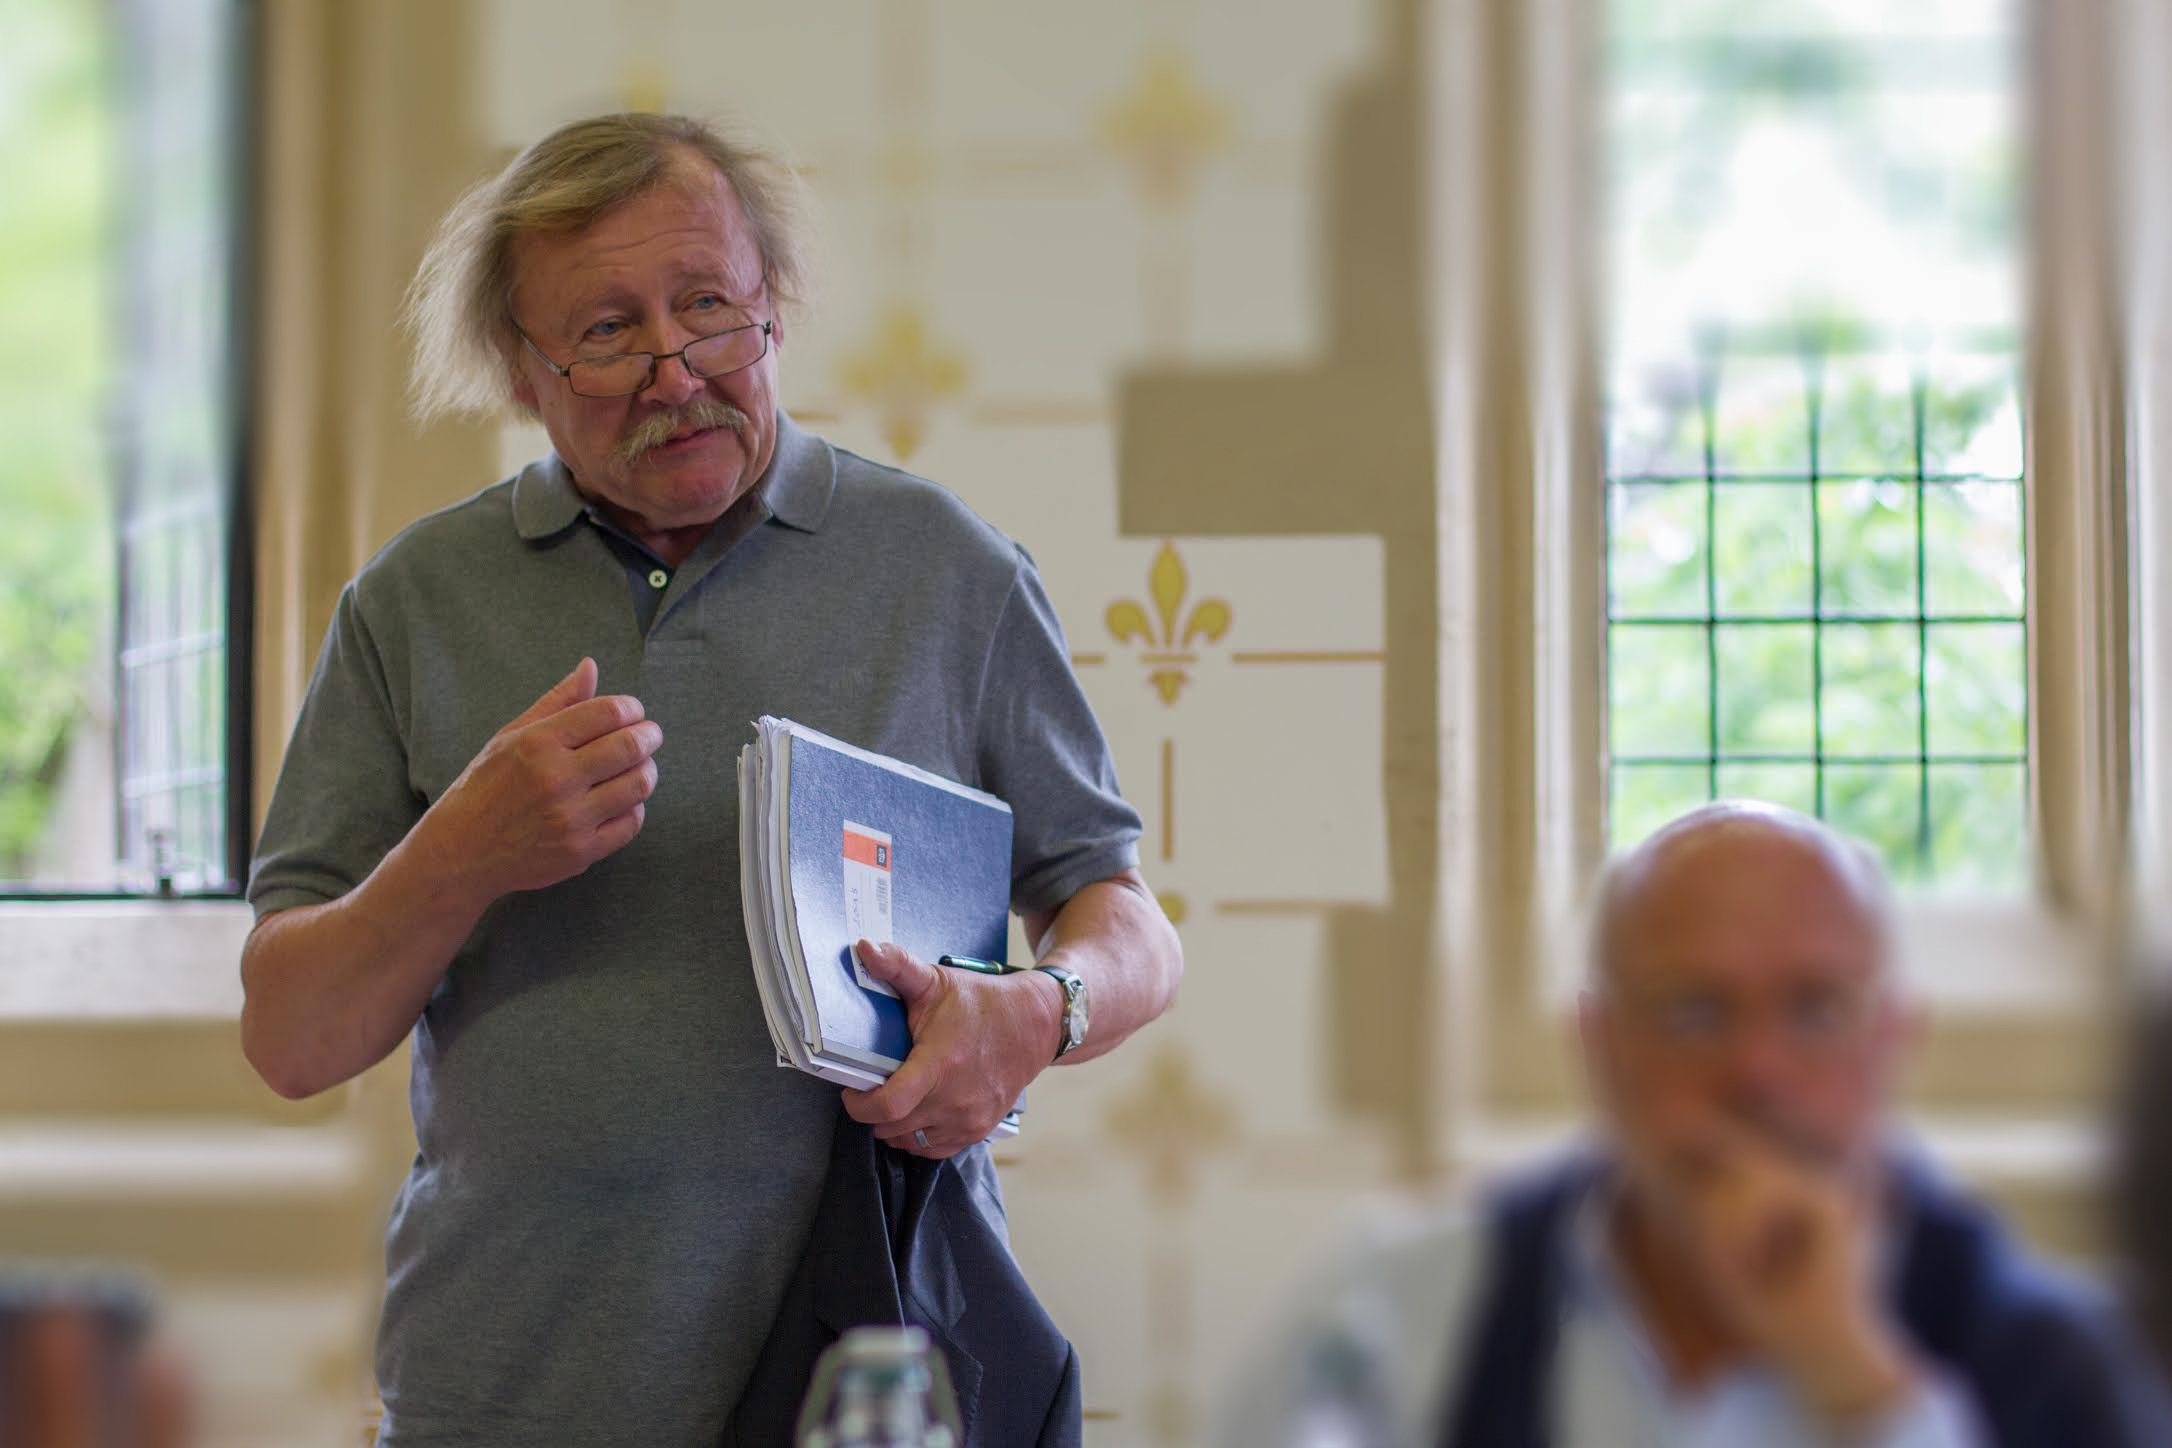 <span>Peter Sloterdijk at the <span>Berggruen Center on Philosophy and Culture symposium</span> at St. John's Colle